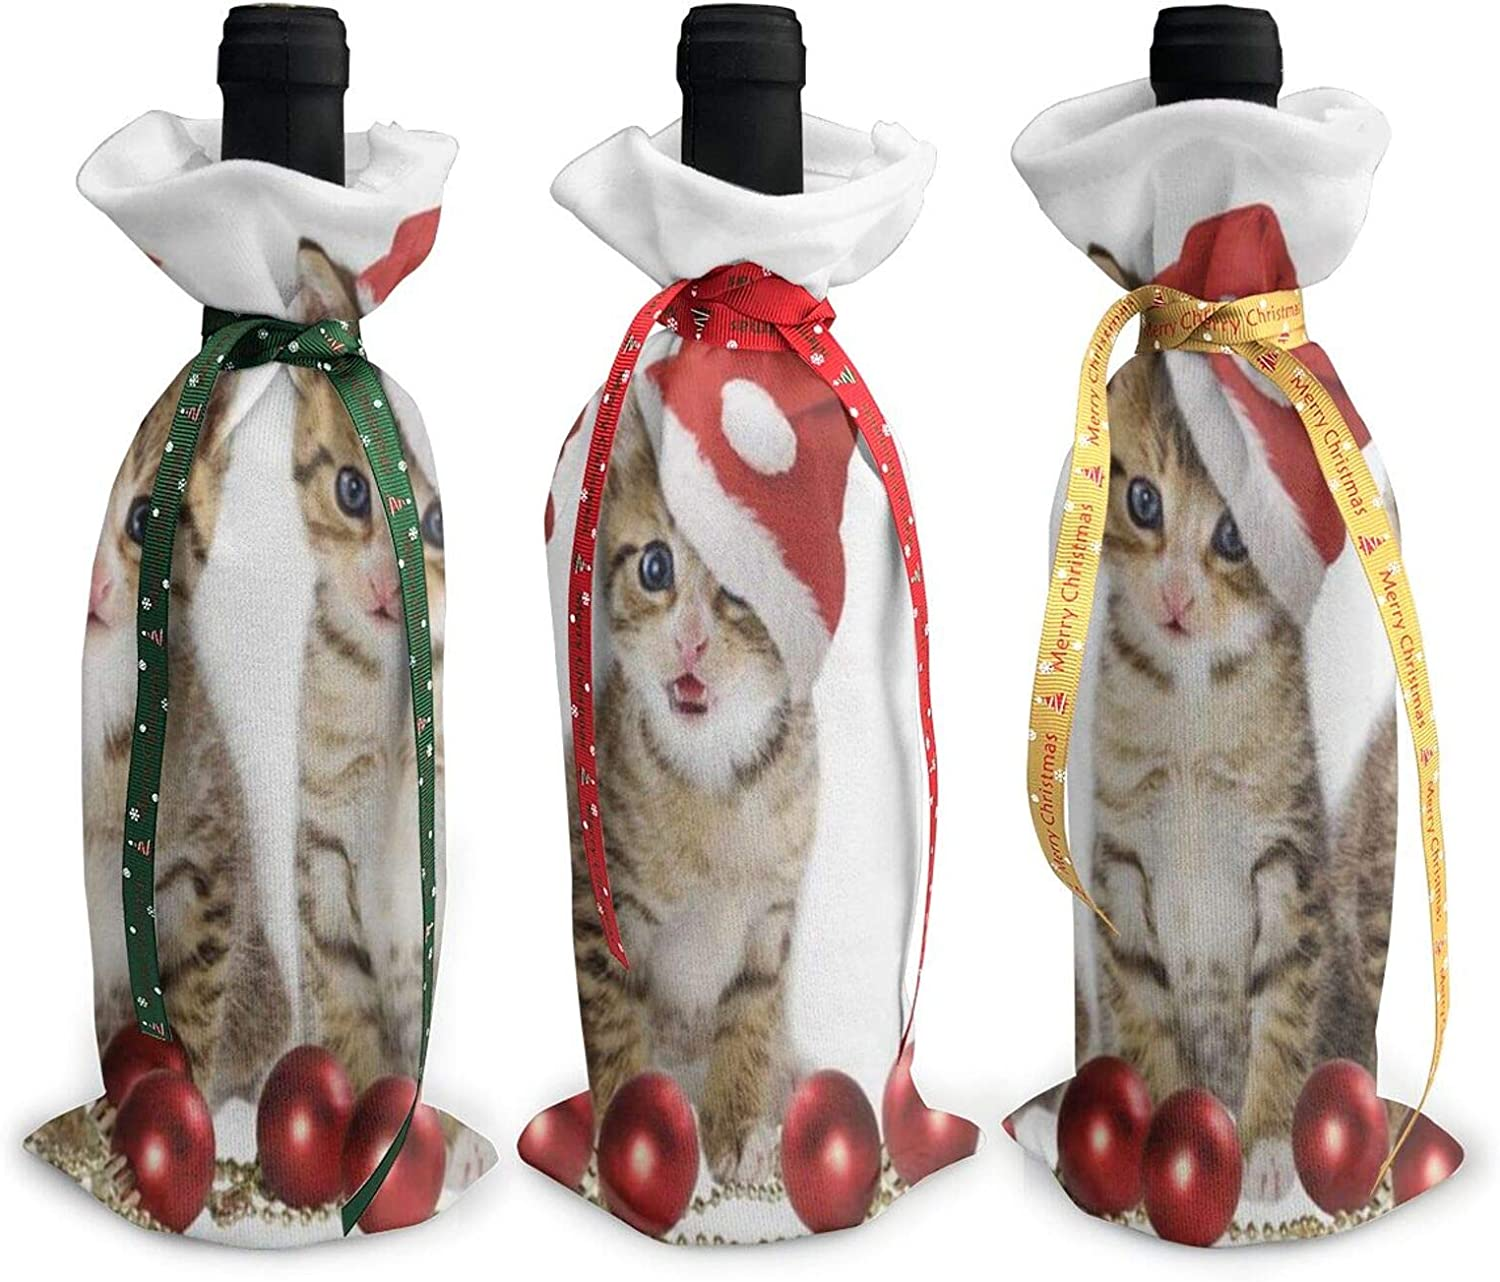 Christmas Wine Bottle Cover Bag Christmas Cat Single Reusable Wine Bottle Dress Wrap Sets 3 Decoration Bag With Ropes Dinner Party Table Decor Christmas Handmade Gift